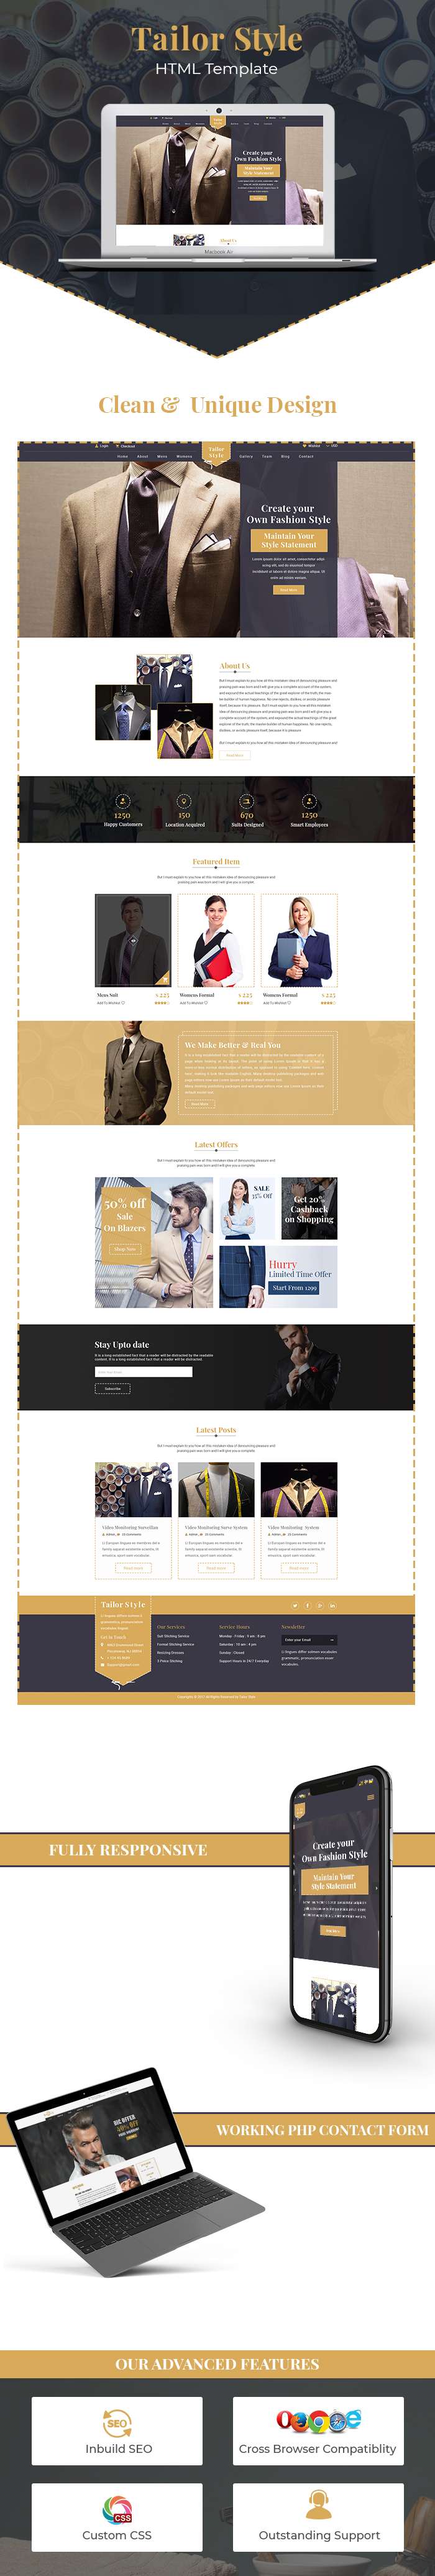 Tailor Shop HTML Website Templates